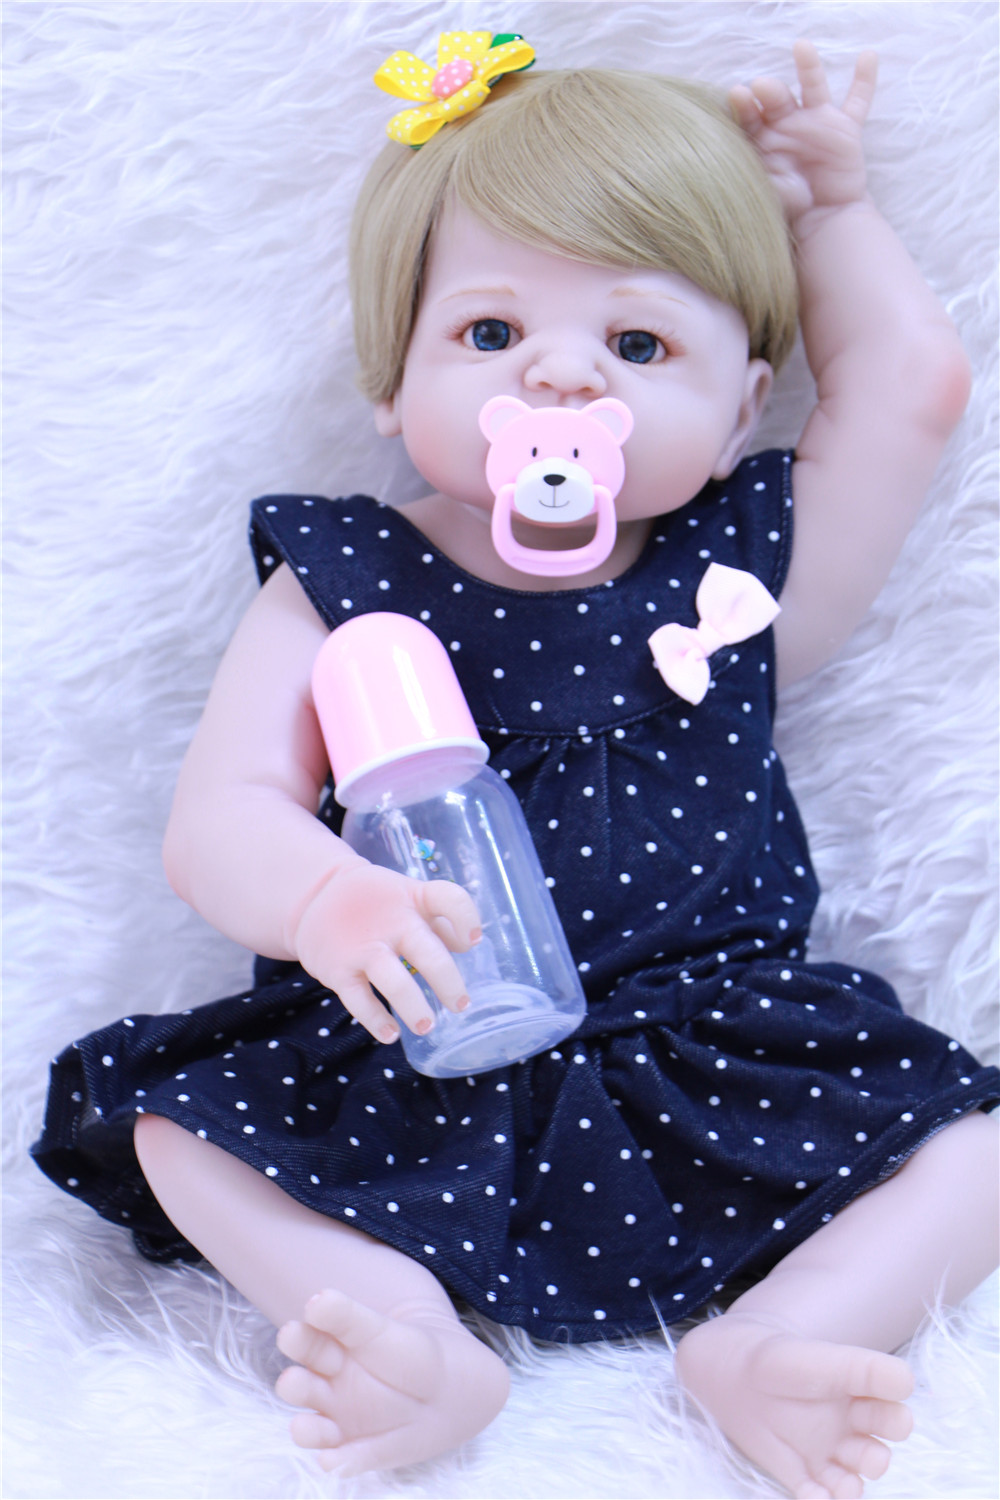 23inch Newborn Dolls Lifelike Reborn Full Body Silicone Vinyl clothes mold baby Christmas Gift For Girls Realistic Children Toy23inch Newborn Dolls Lifelike Reborn Full Body Silicone Vinyl clothes mold baby Christmas Gift For Girls Realistic Children Toy